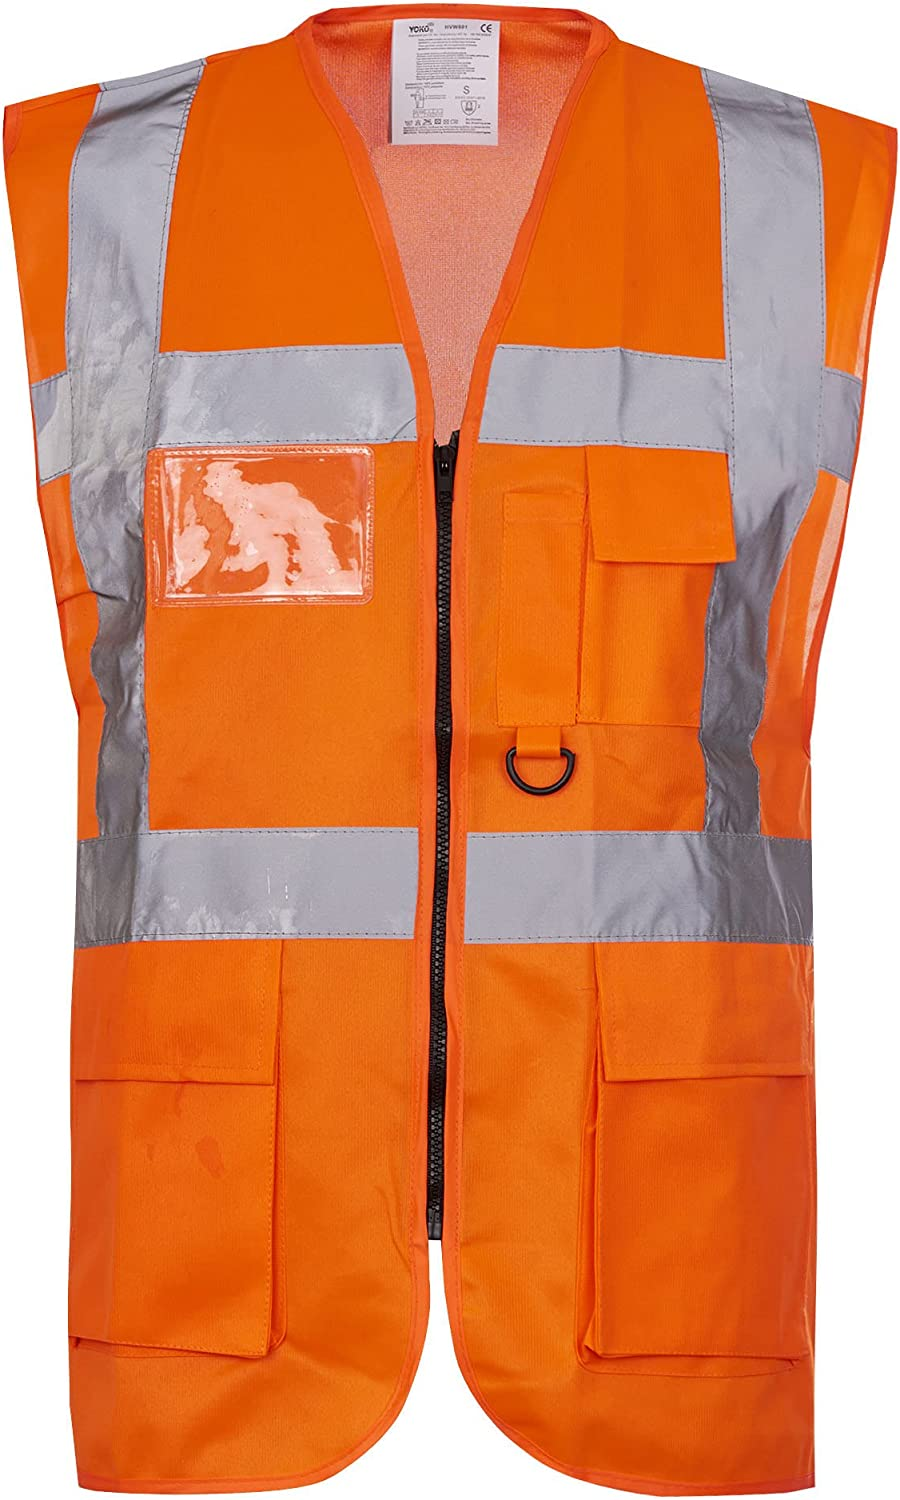 RG Clothing Hivis High Visibility Executive Work Safety Zip Vest Pocket Waistcoat Size S-4XL